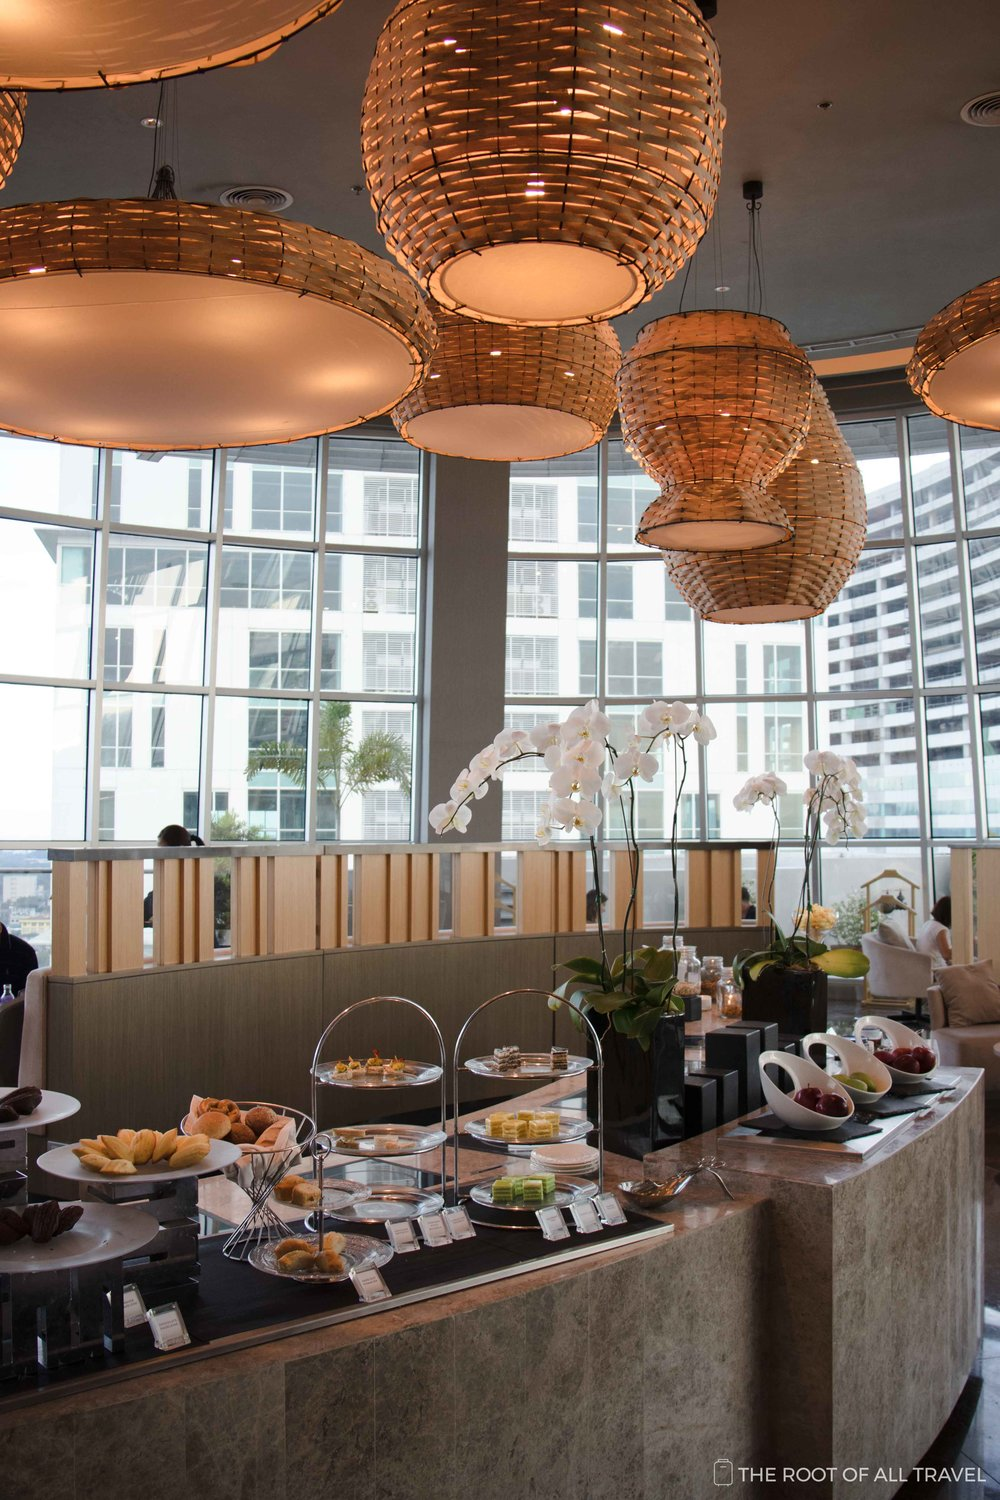 Afternoon tea spread at the Premier Lounge